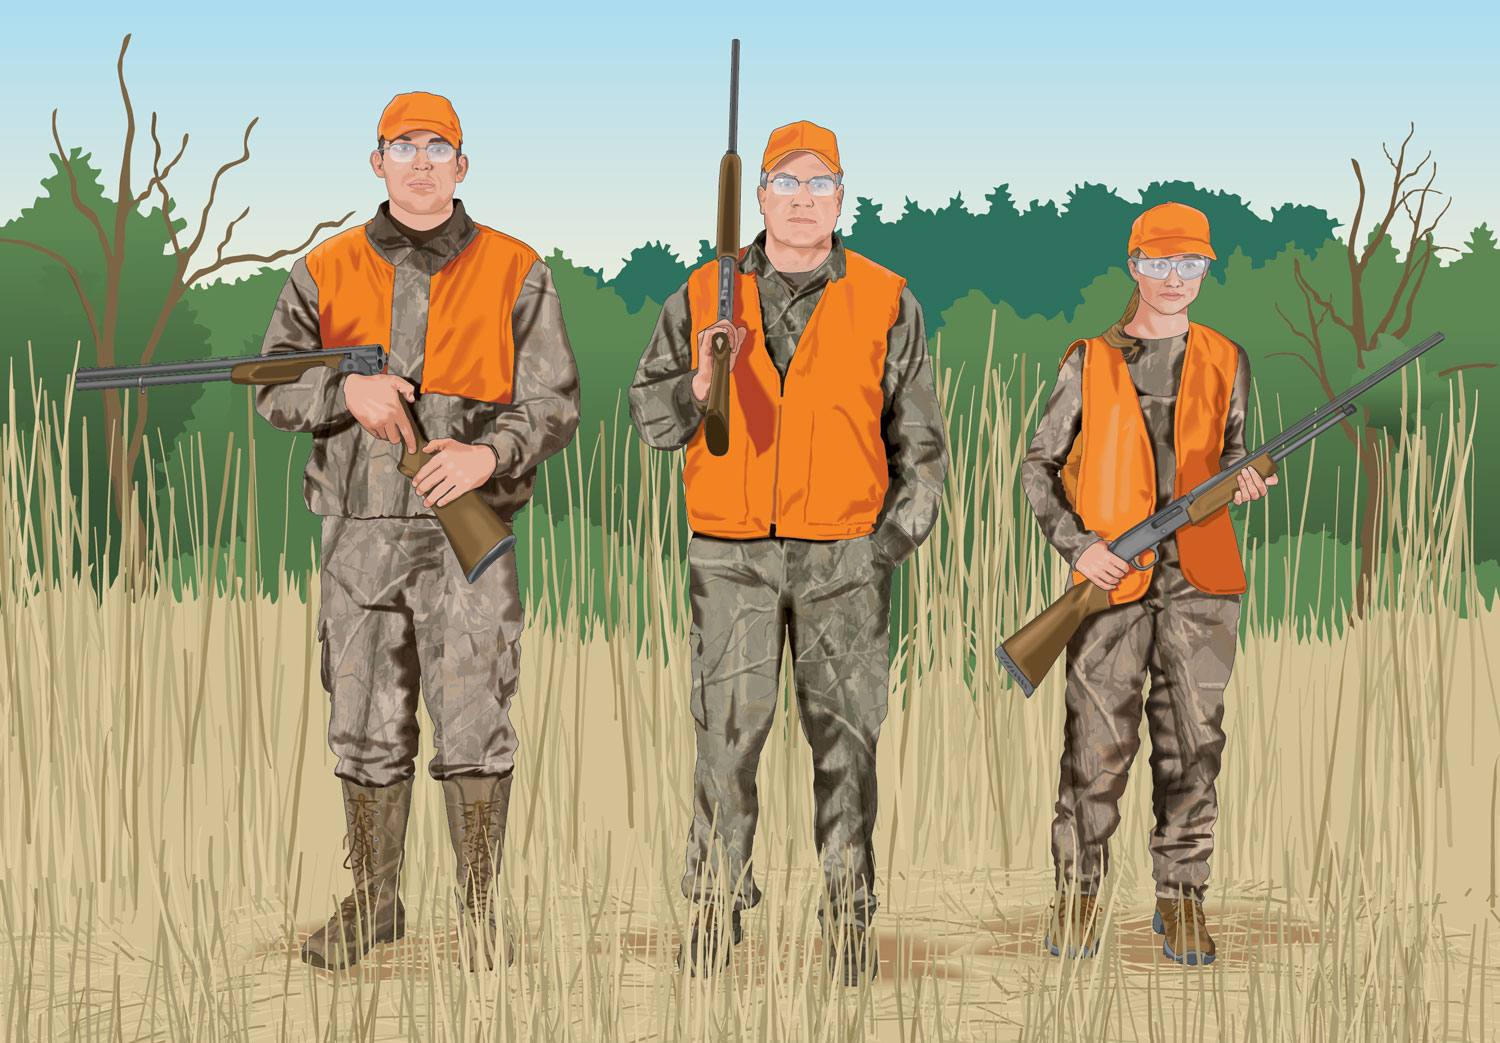 Hunters carrying firearms side-by-side